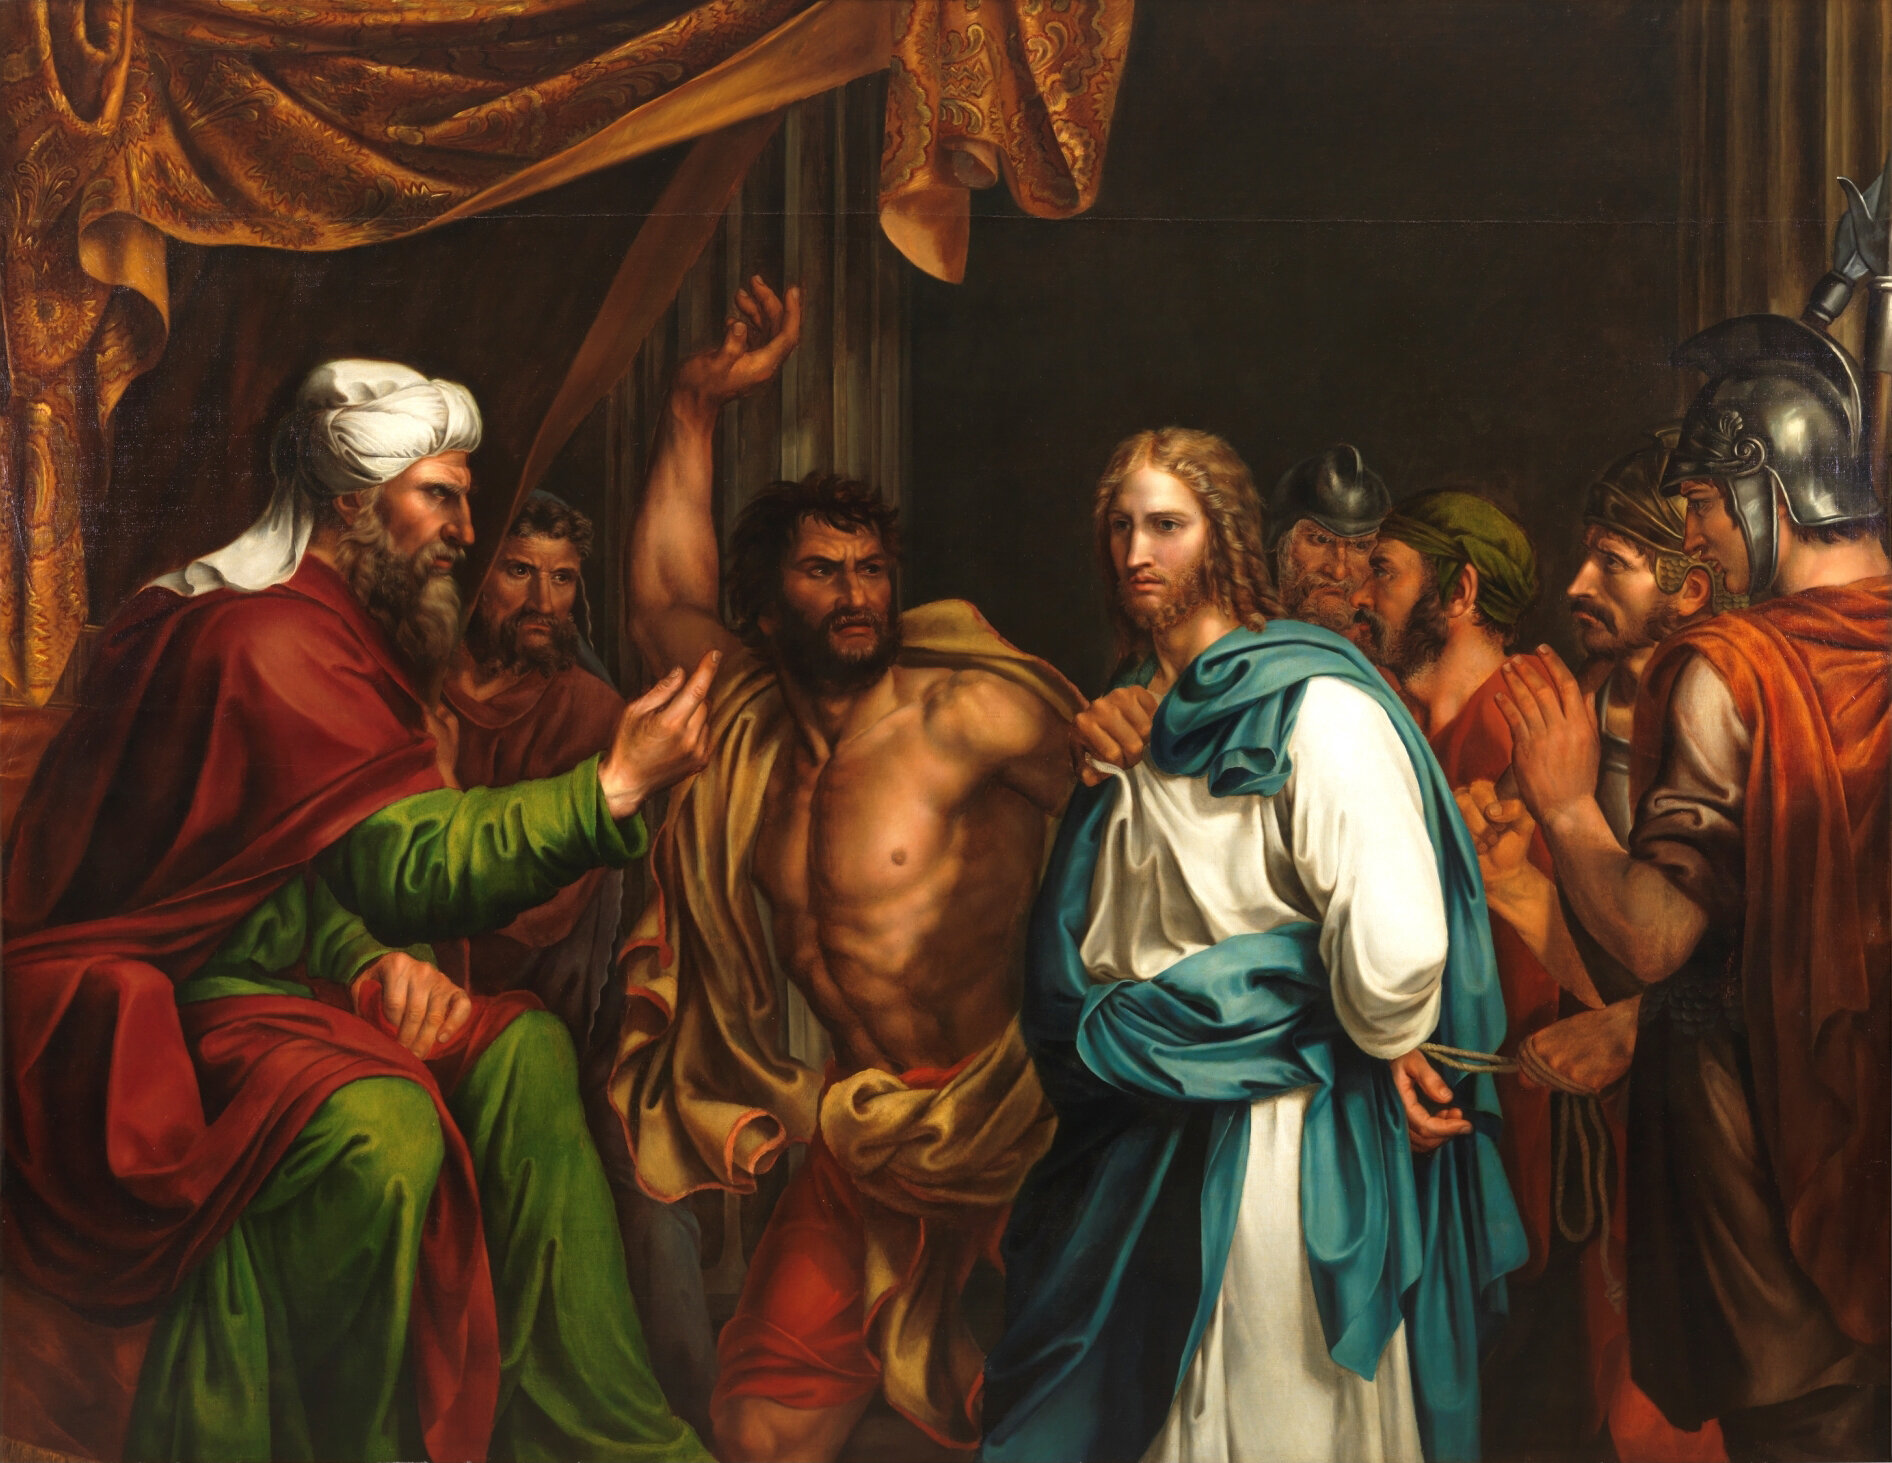 Jesus and the Trial (Mark 14:53-72)